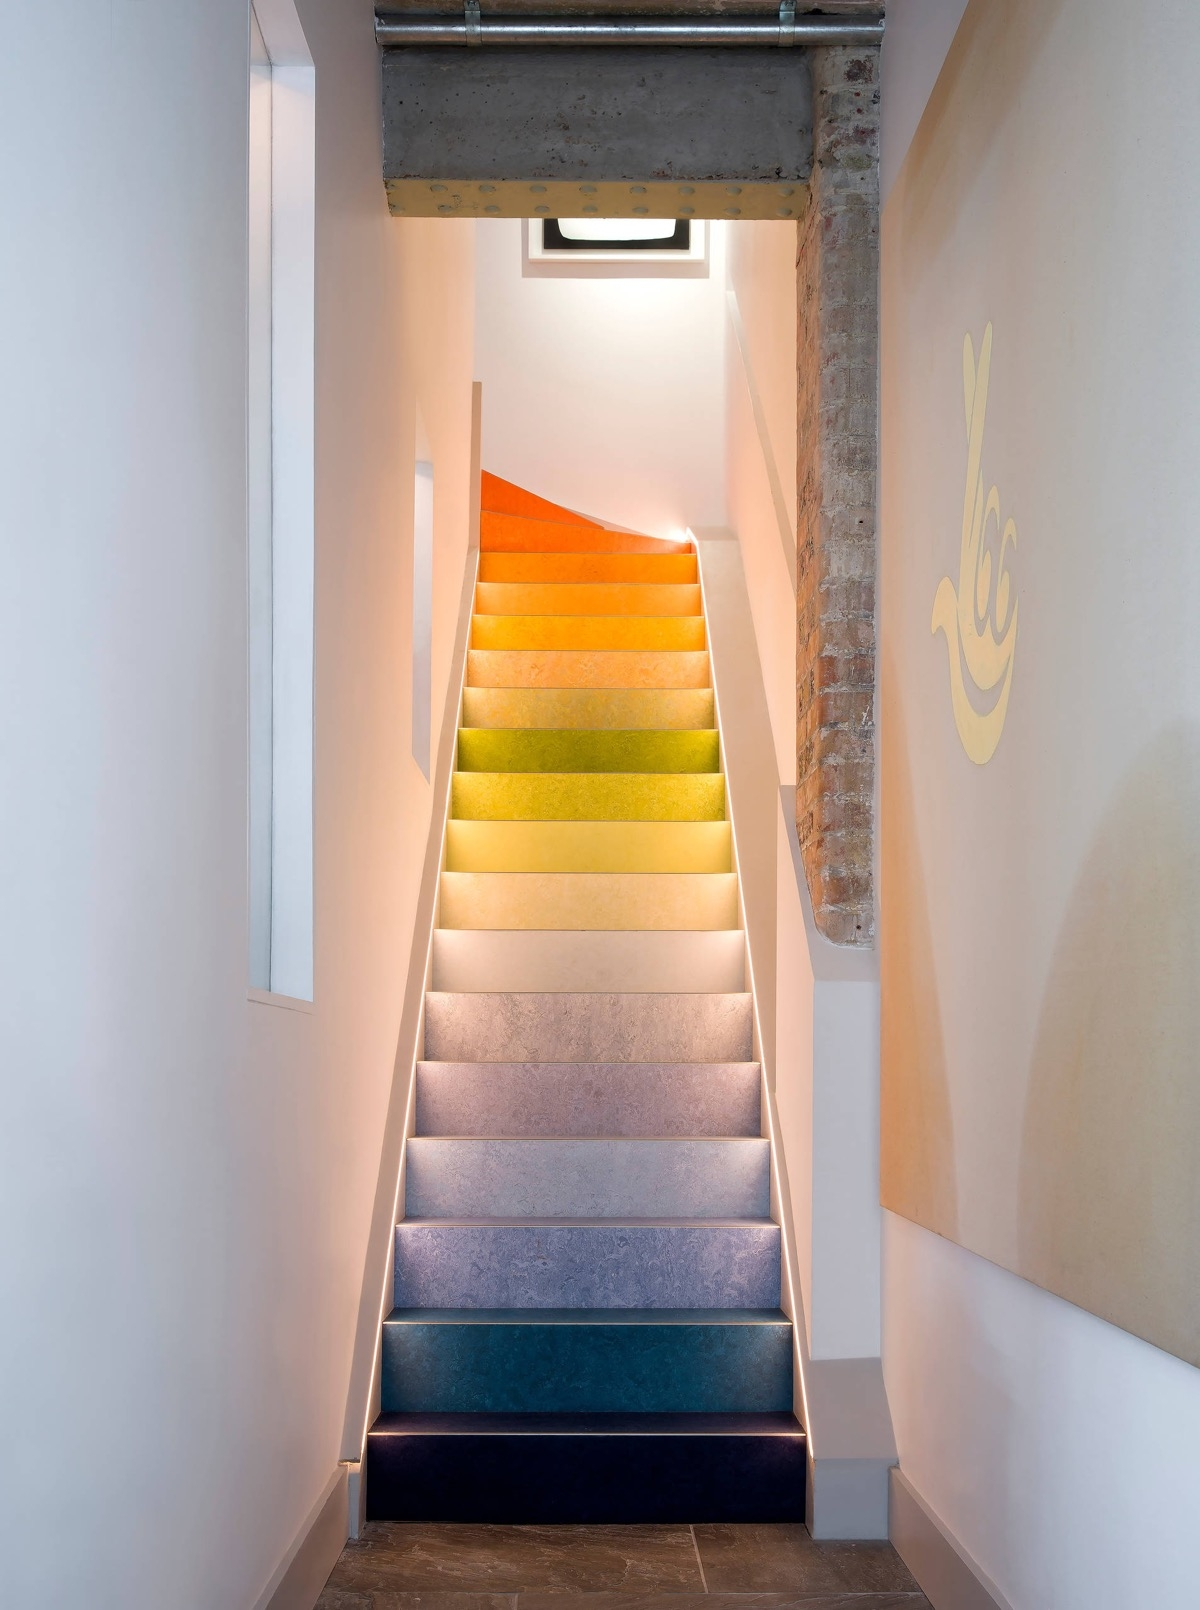 51 Stunning Staircase Design Ideas | Stair Room Front Design | 3Rd Floor | Residential | 100 Sq Meter House | Hall | Small Space